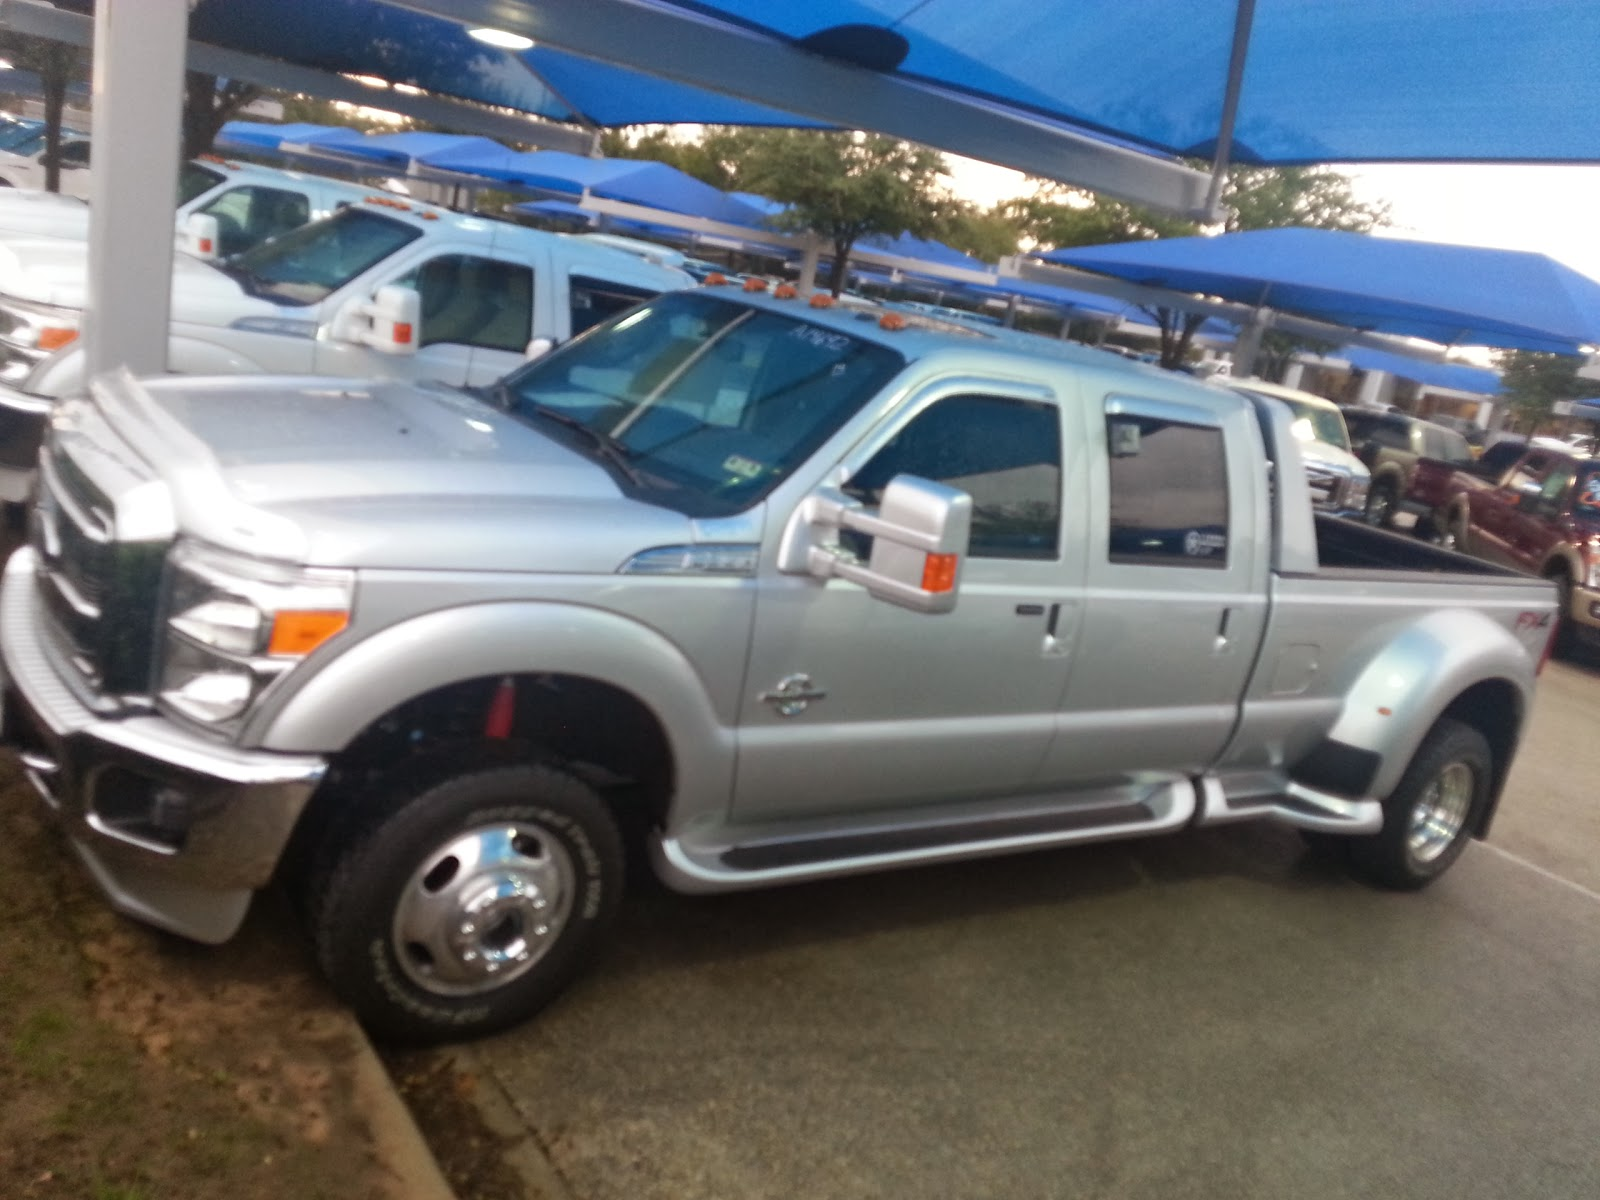 New 2014 Ford F550 F450 F350 Laredo Hauler Trucks TDY Sales 817-243